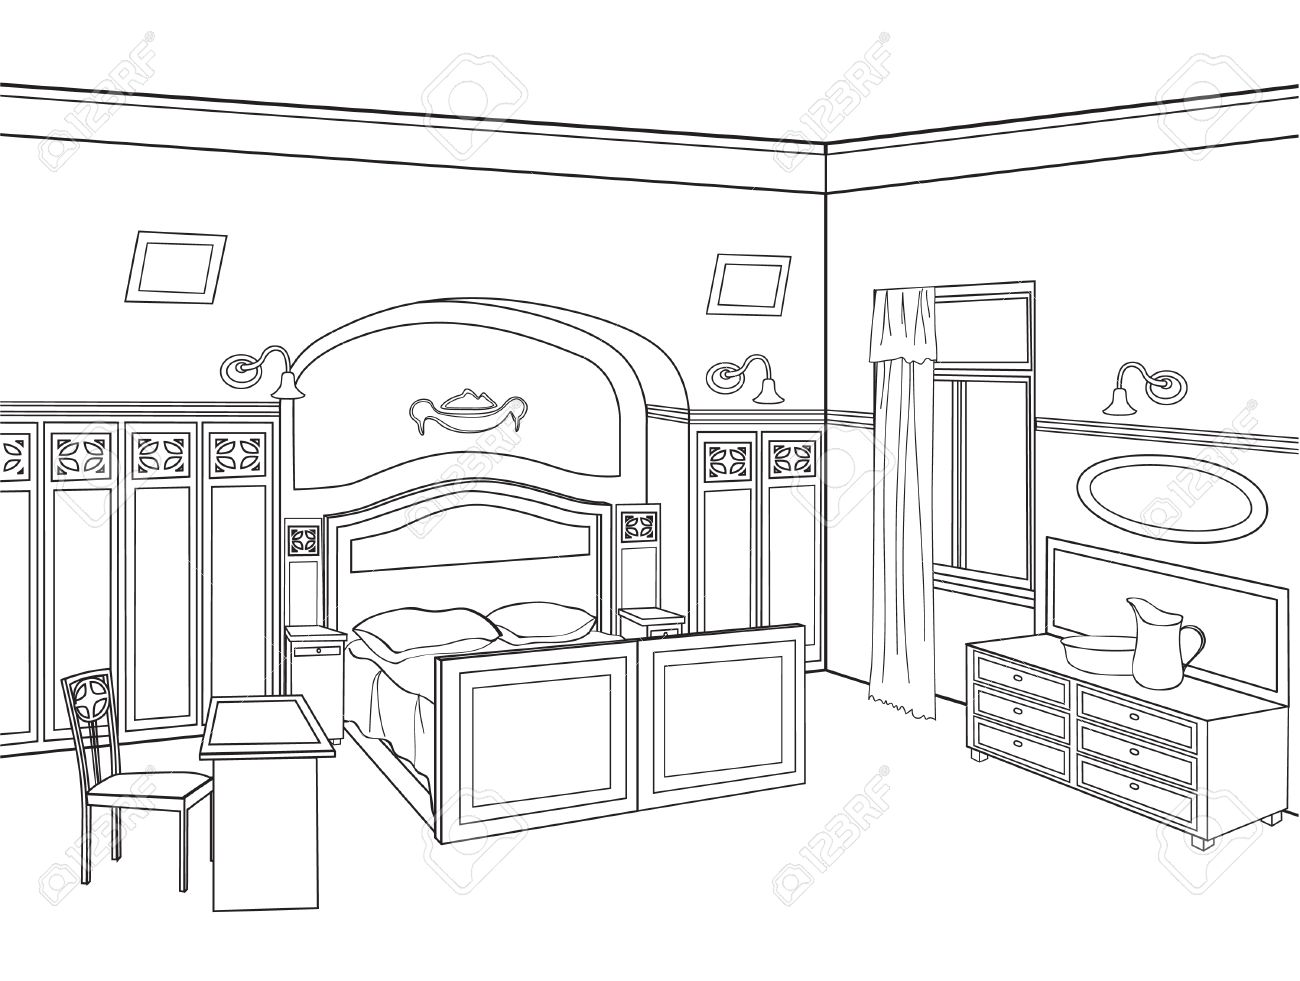 Nice Outline Of A Bedroom  2  Bedroom Furniture  Editable Vector  Illustration Of An Outline Sketch Of A Interior  Graphical Hand. Nice Outline Of A Bedroom  2  Bedroom Furniture  Editable Vector